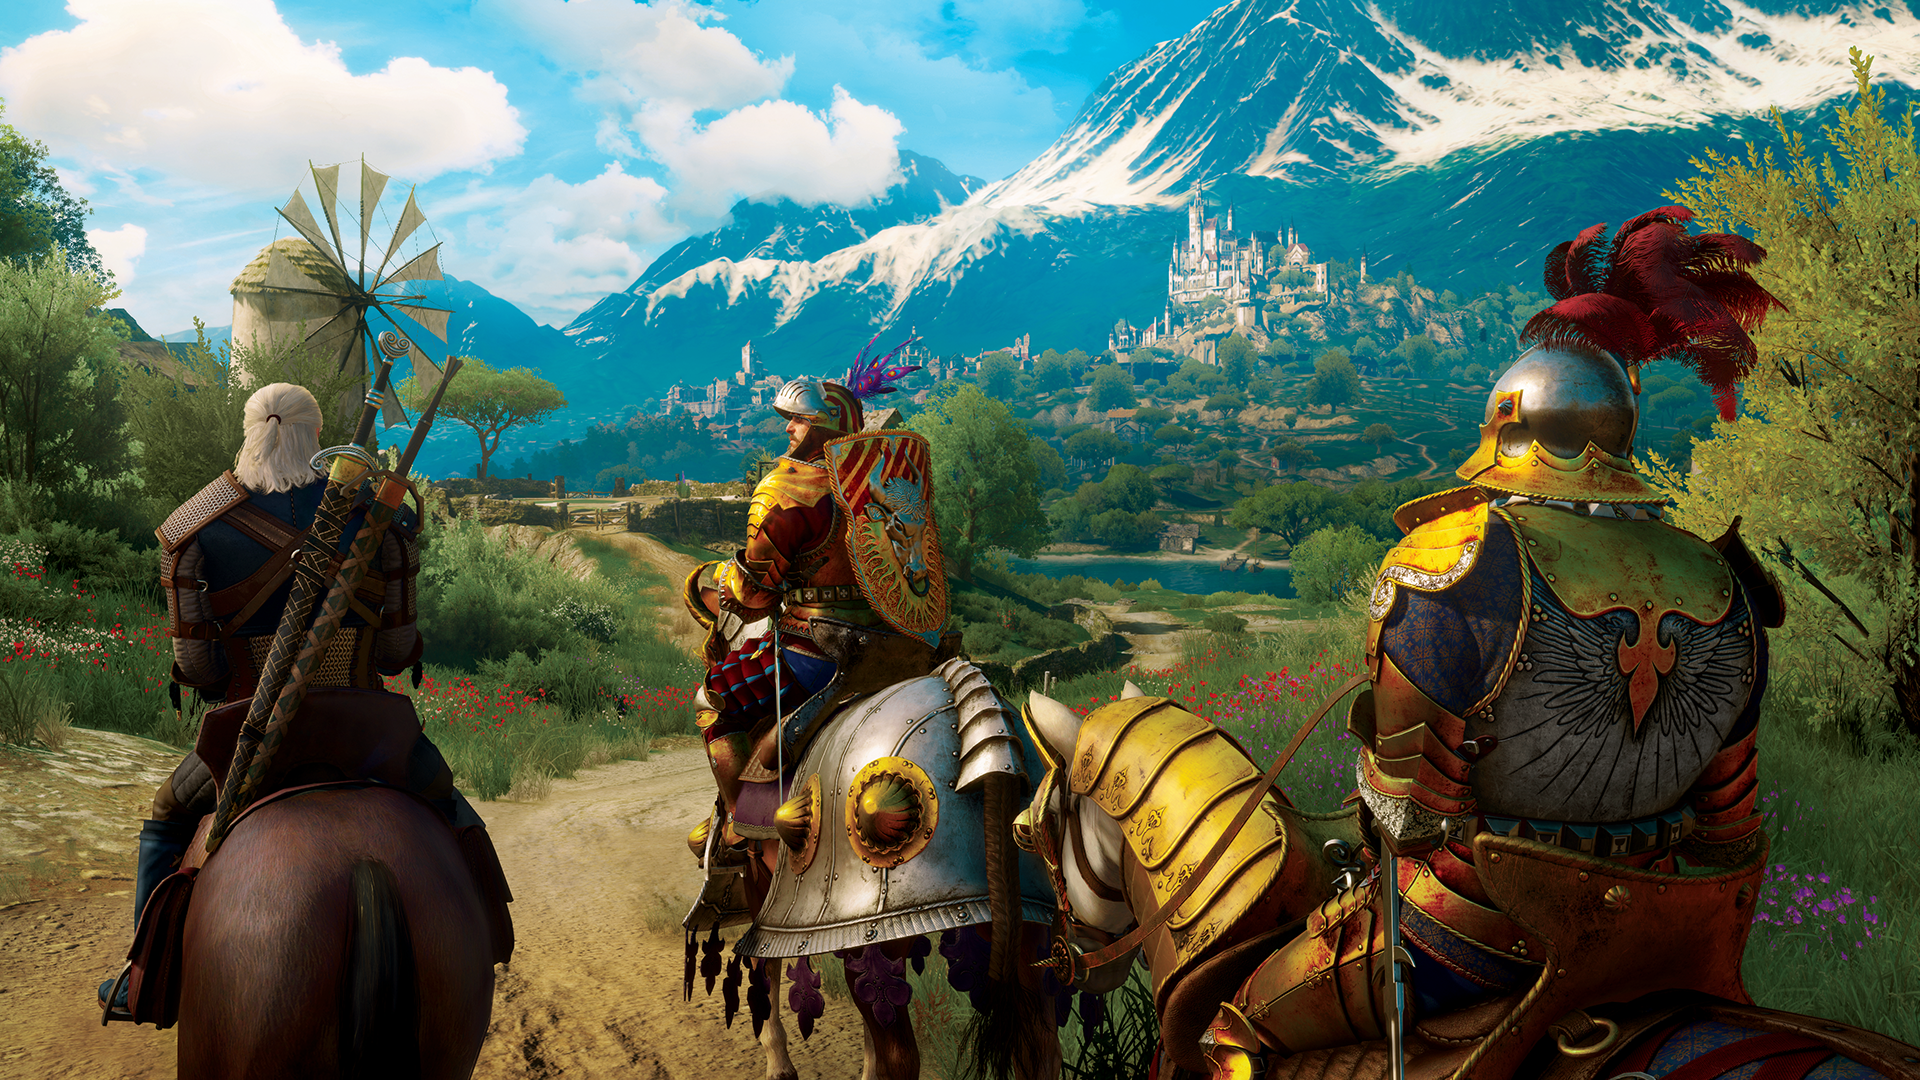 DLC 18 - The Witcher 3: Wild Hunt - Blood and Wine (GOG) для The Witcher 3: Wild Hunt - Скриншот 3